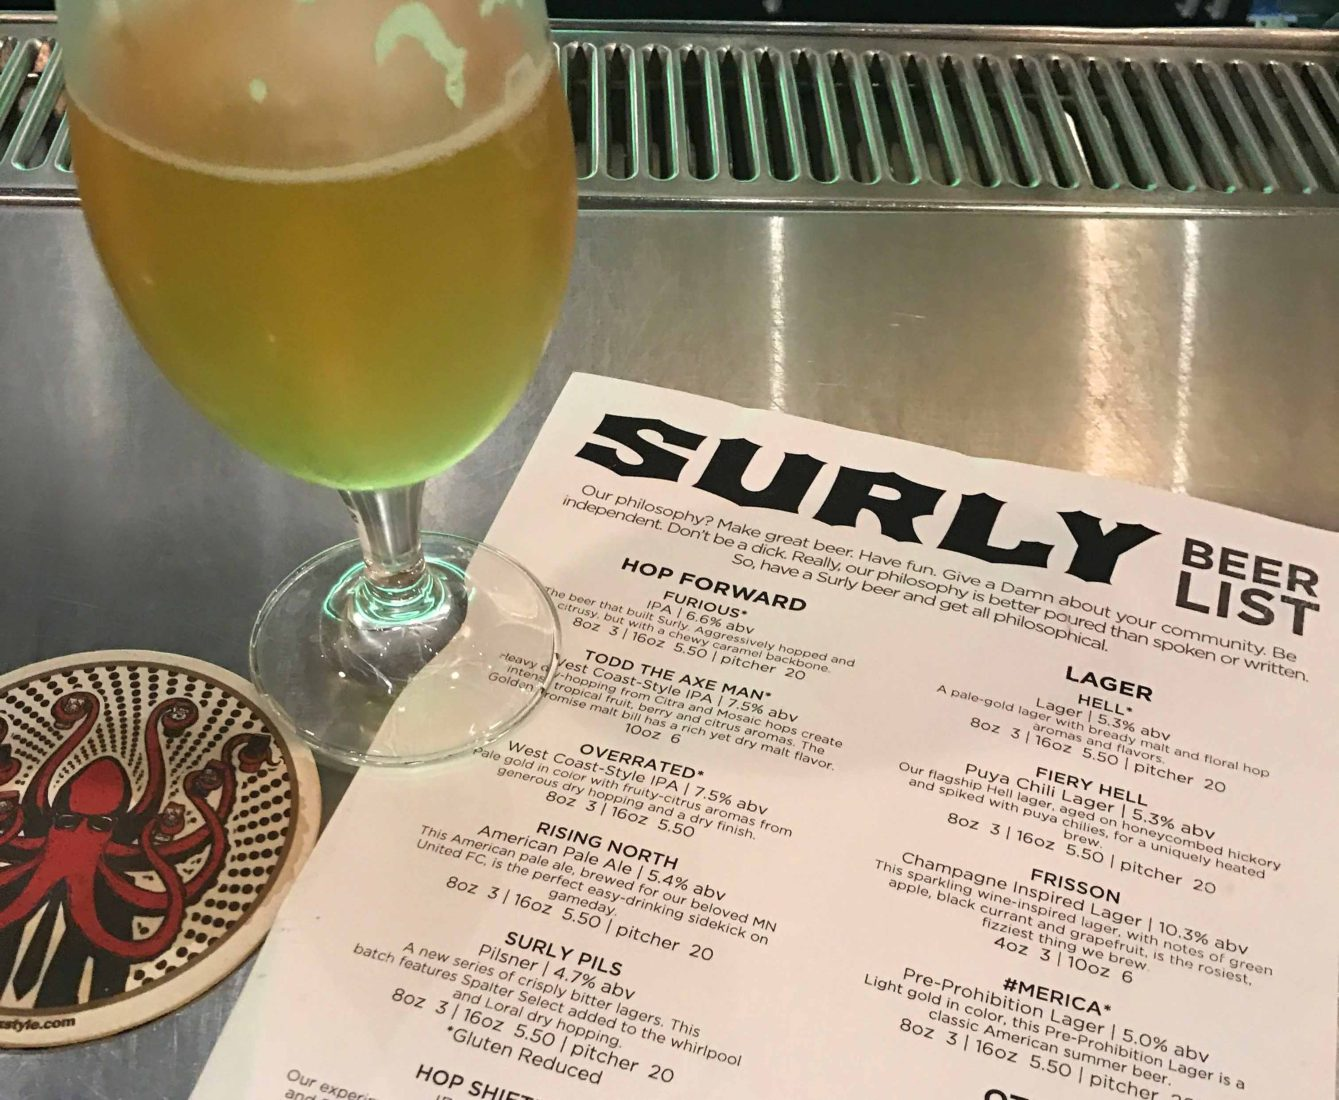 334. Surly Brewing Company, Minneapolis MN, 2017